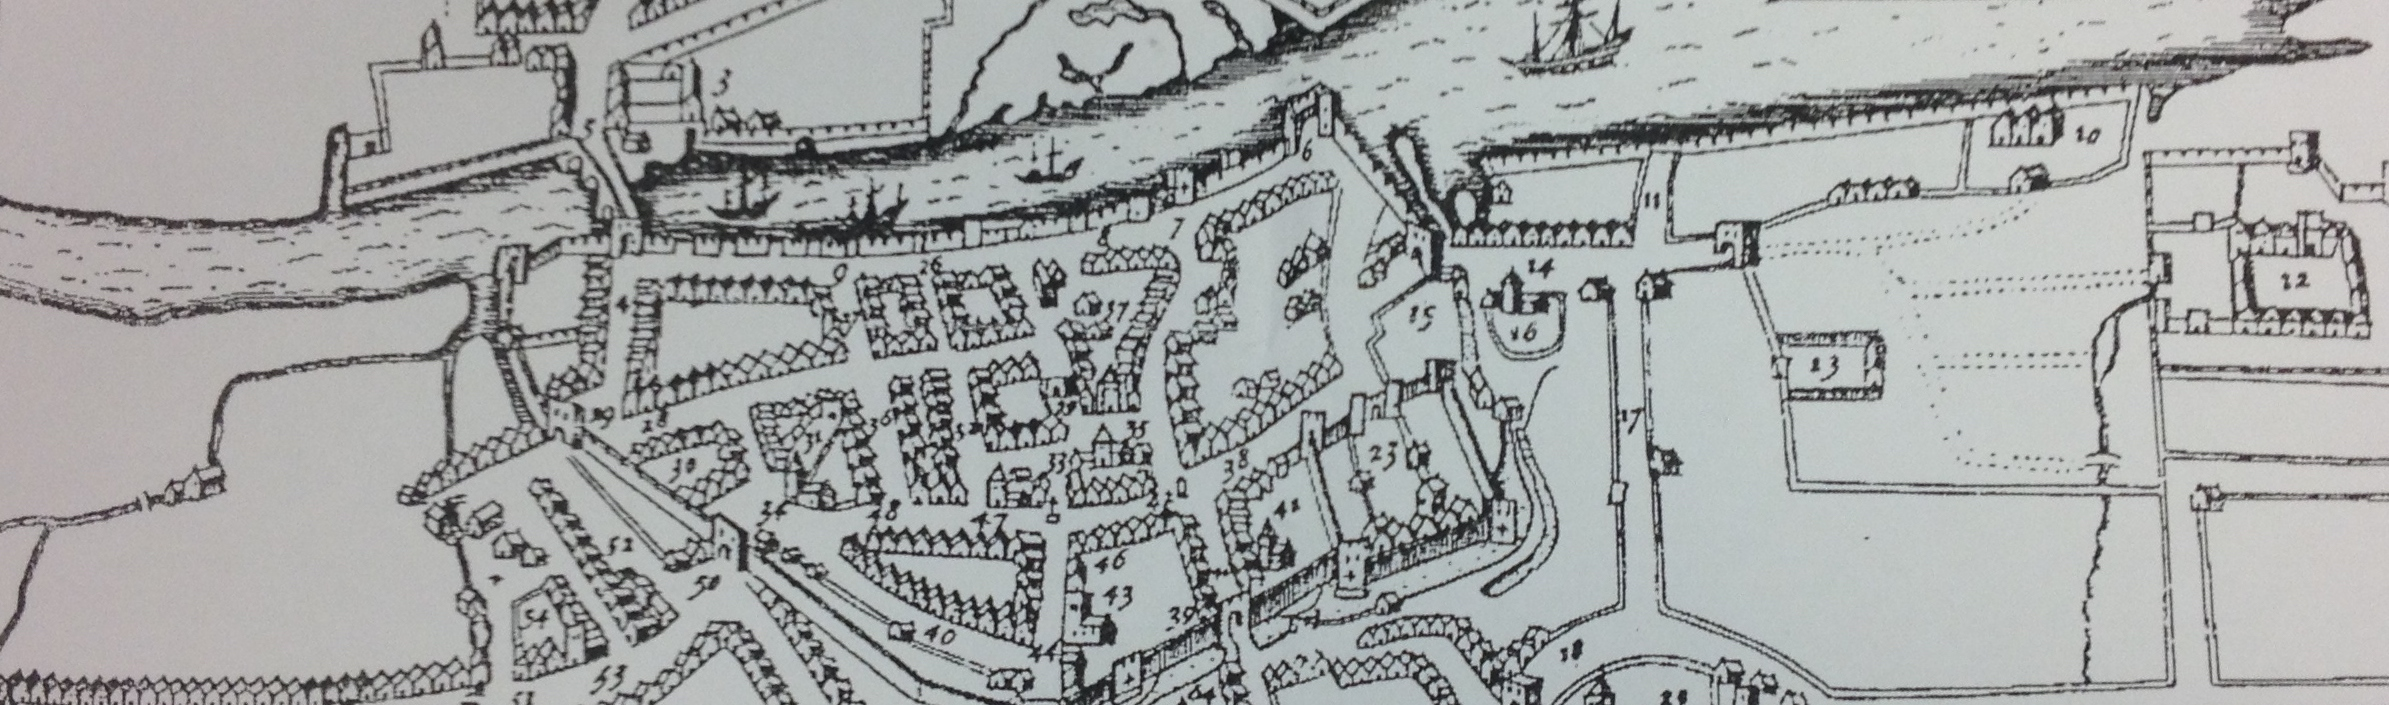 Family and Finances in Fifteenth-Century Dublin